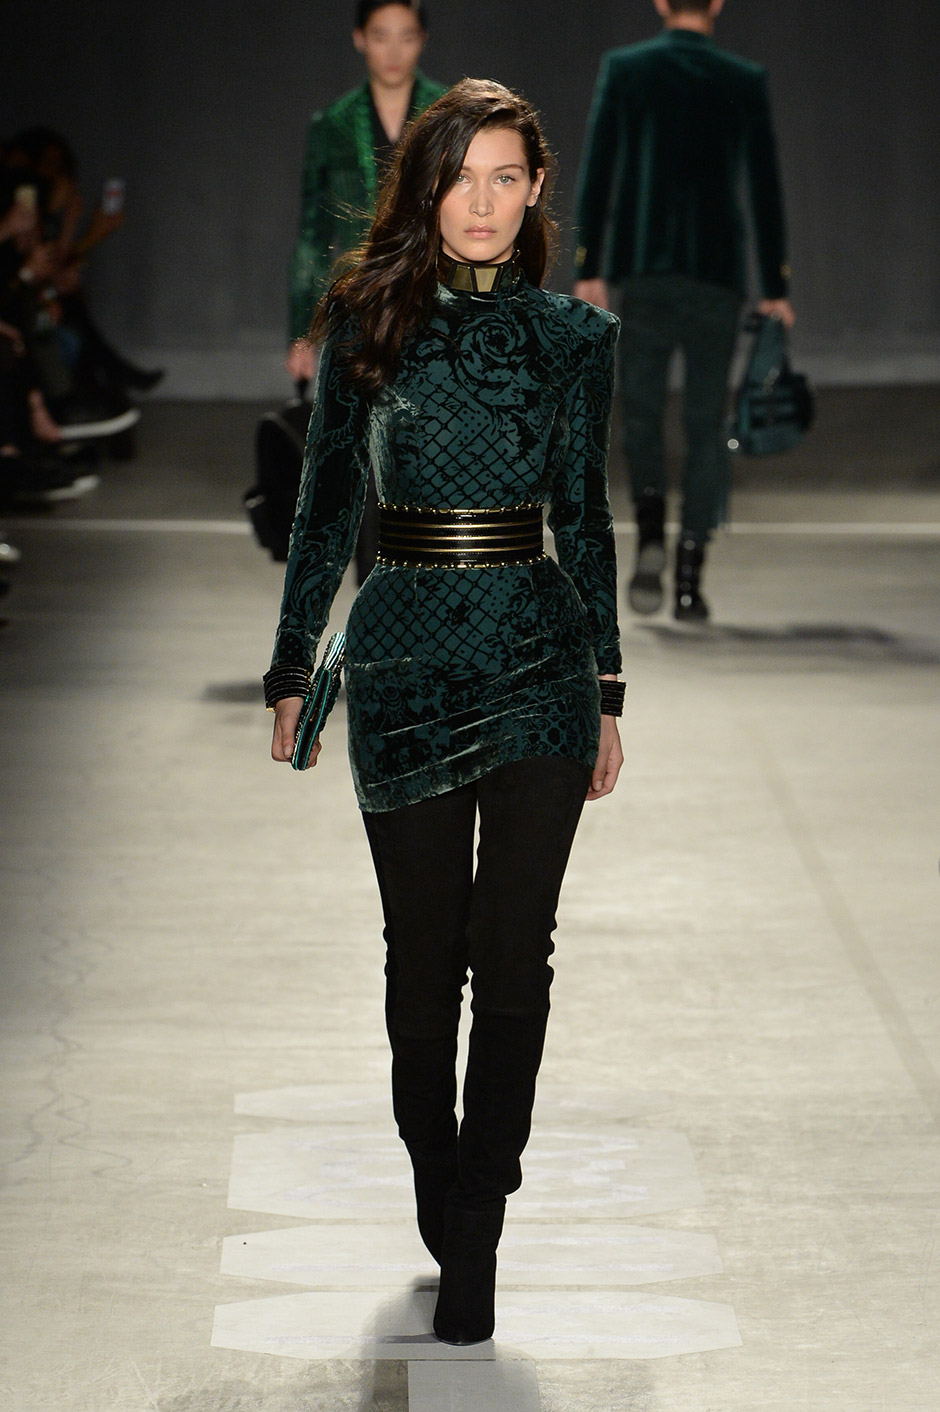 About Balmain Brand Balmain is a haute couture fashion house that was founded by Pierre Balmain. Balmain was born in in France. His father owned a drapery business and his mother and sister owned a fashion boutique where he often worked after his father's death in